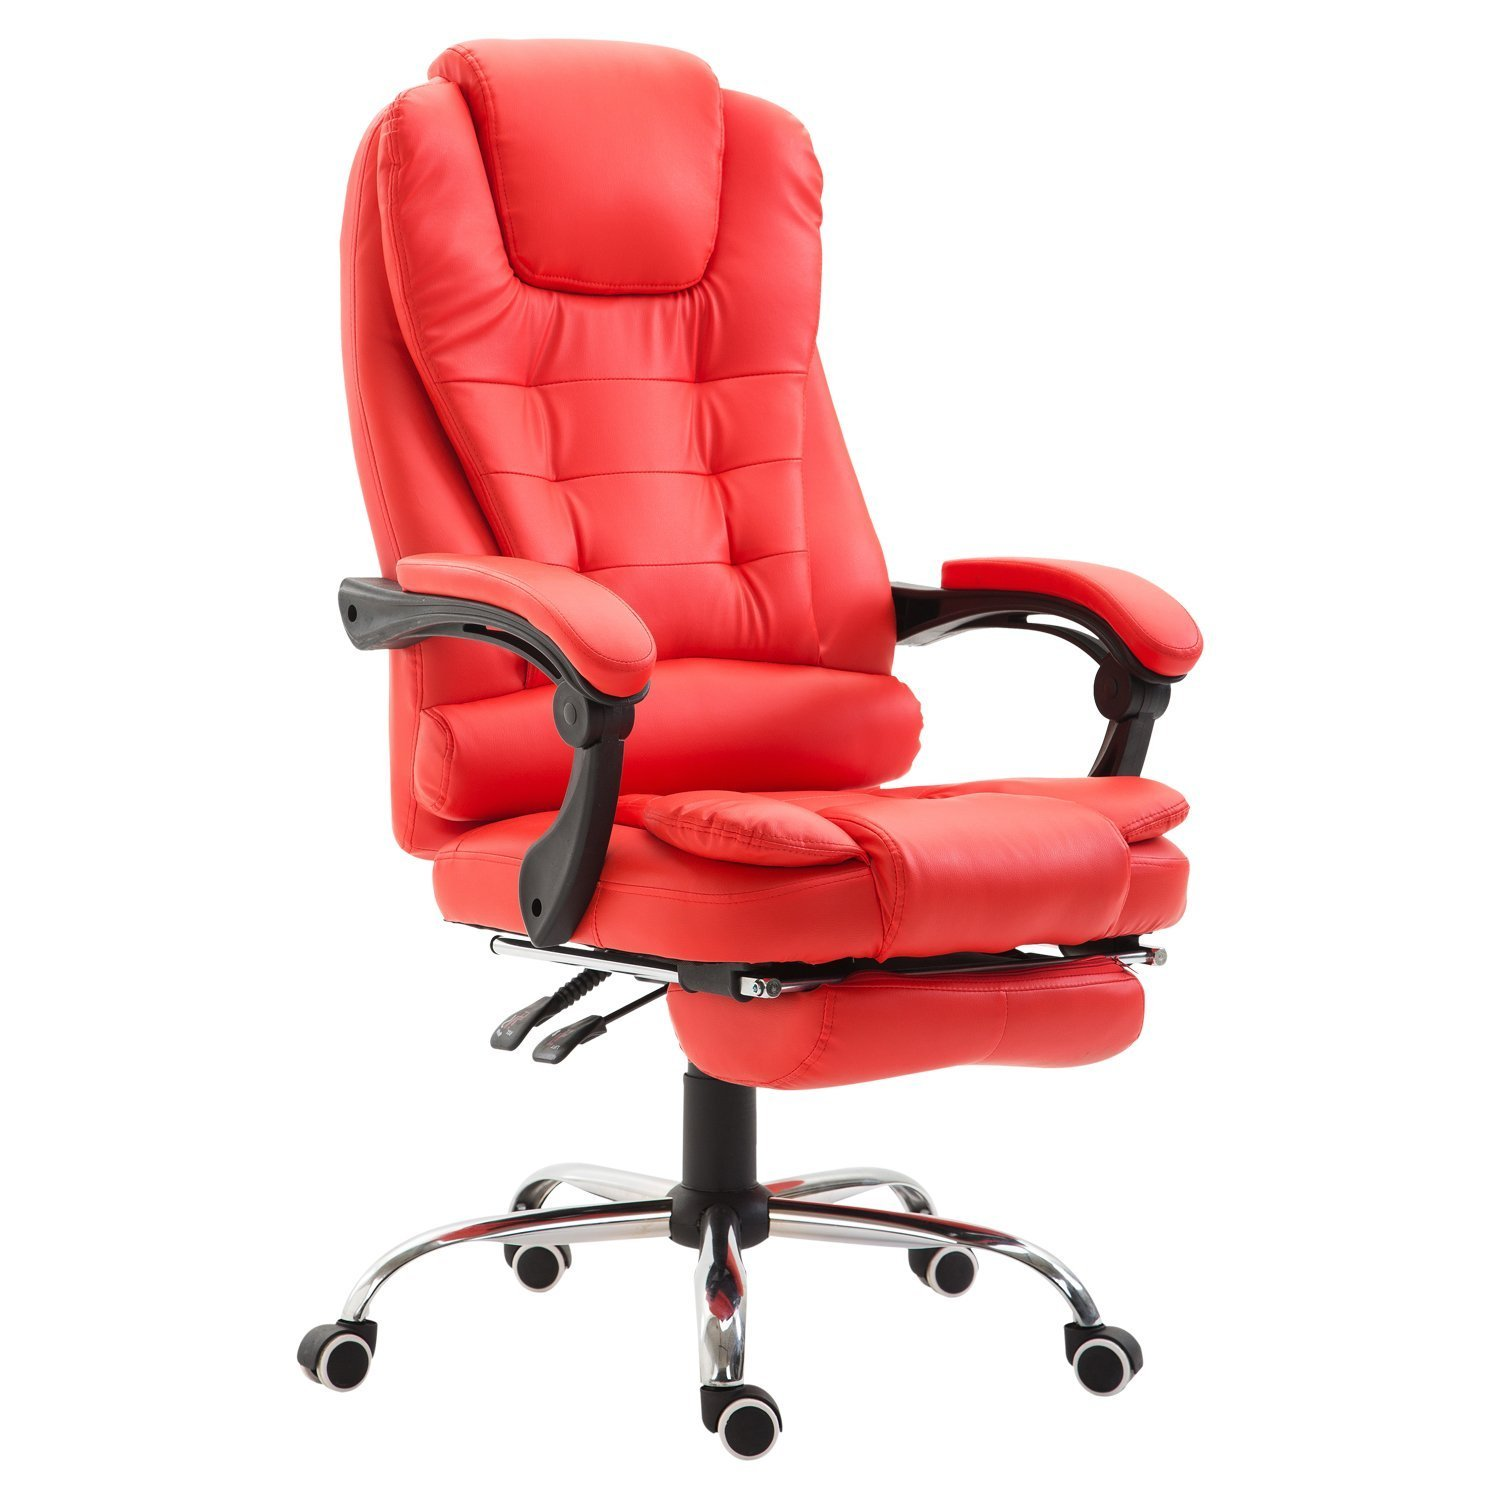 HomCom Reclining PU Leather Executive Home Office Chair with Footrest - Red by HOMCOM